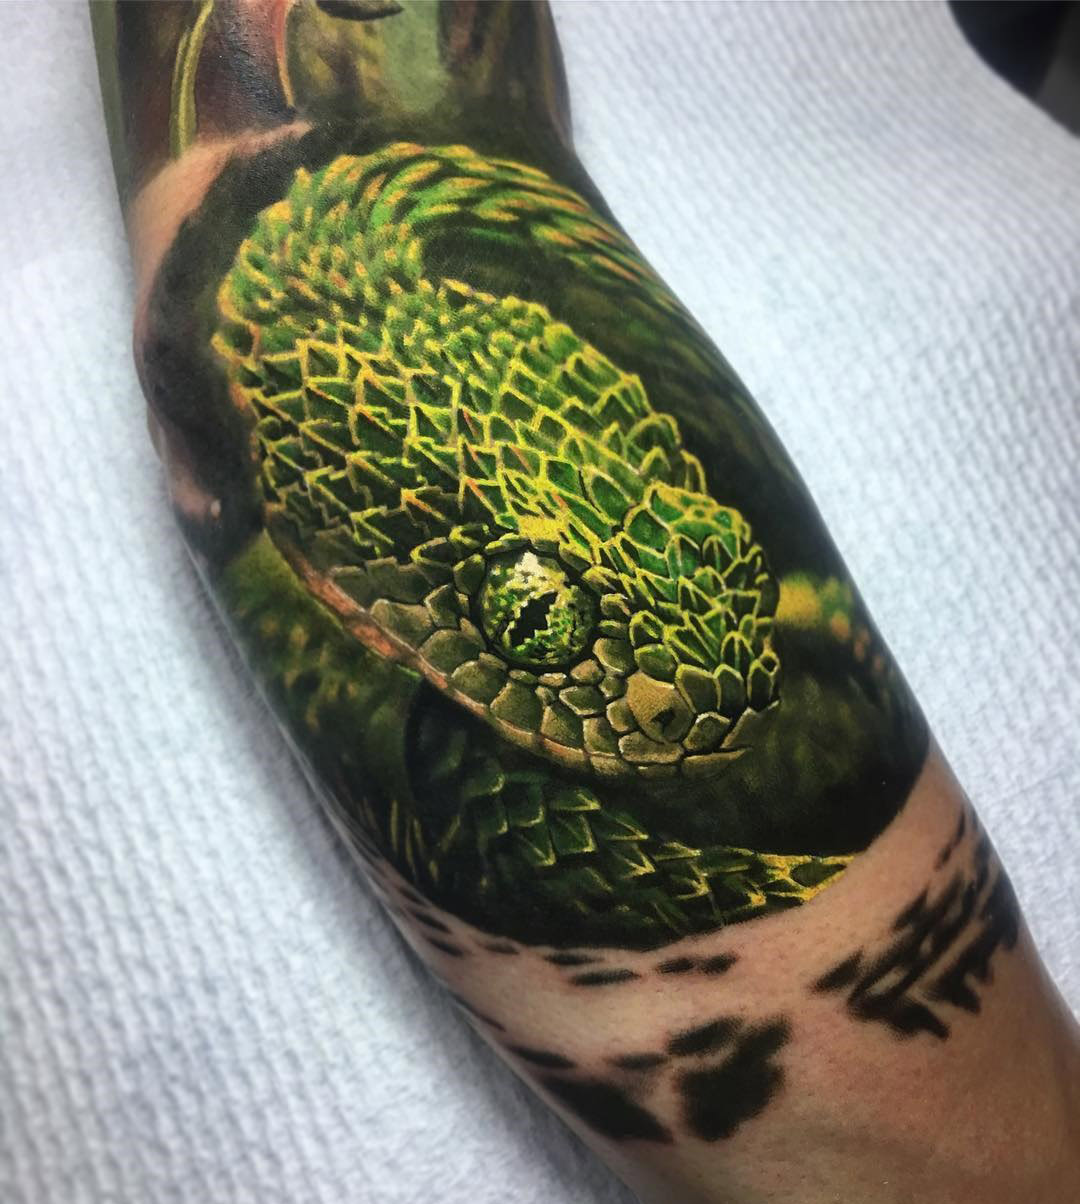 Bush Viper tattoo